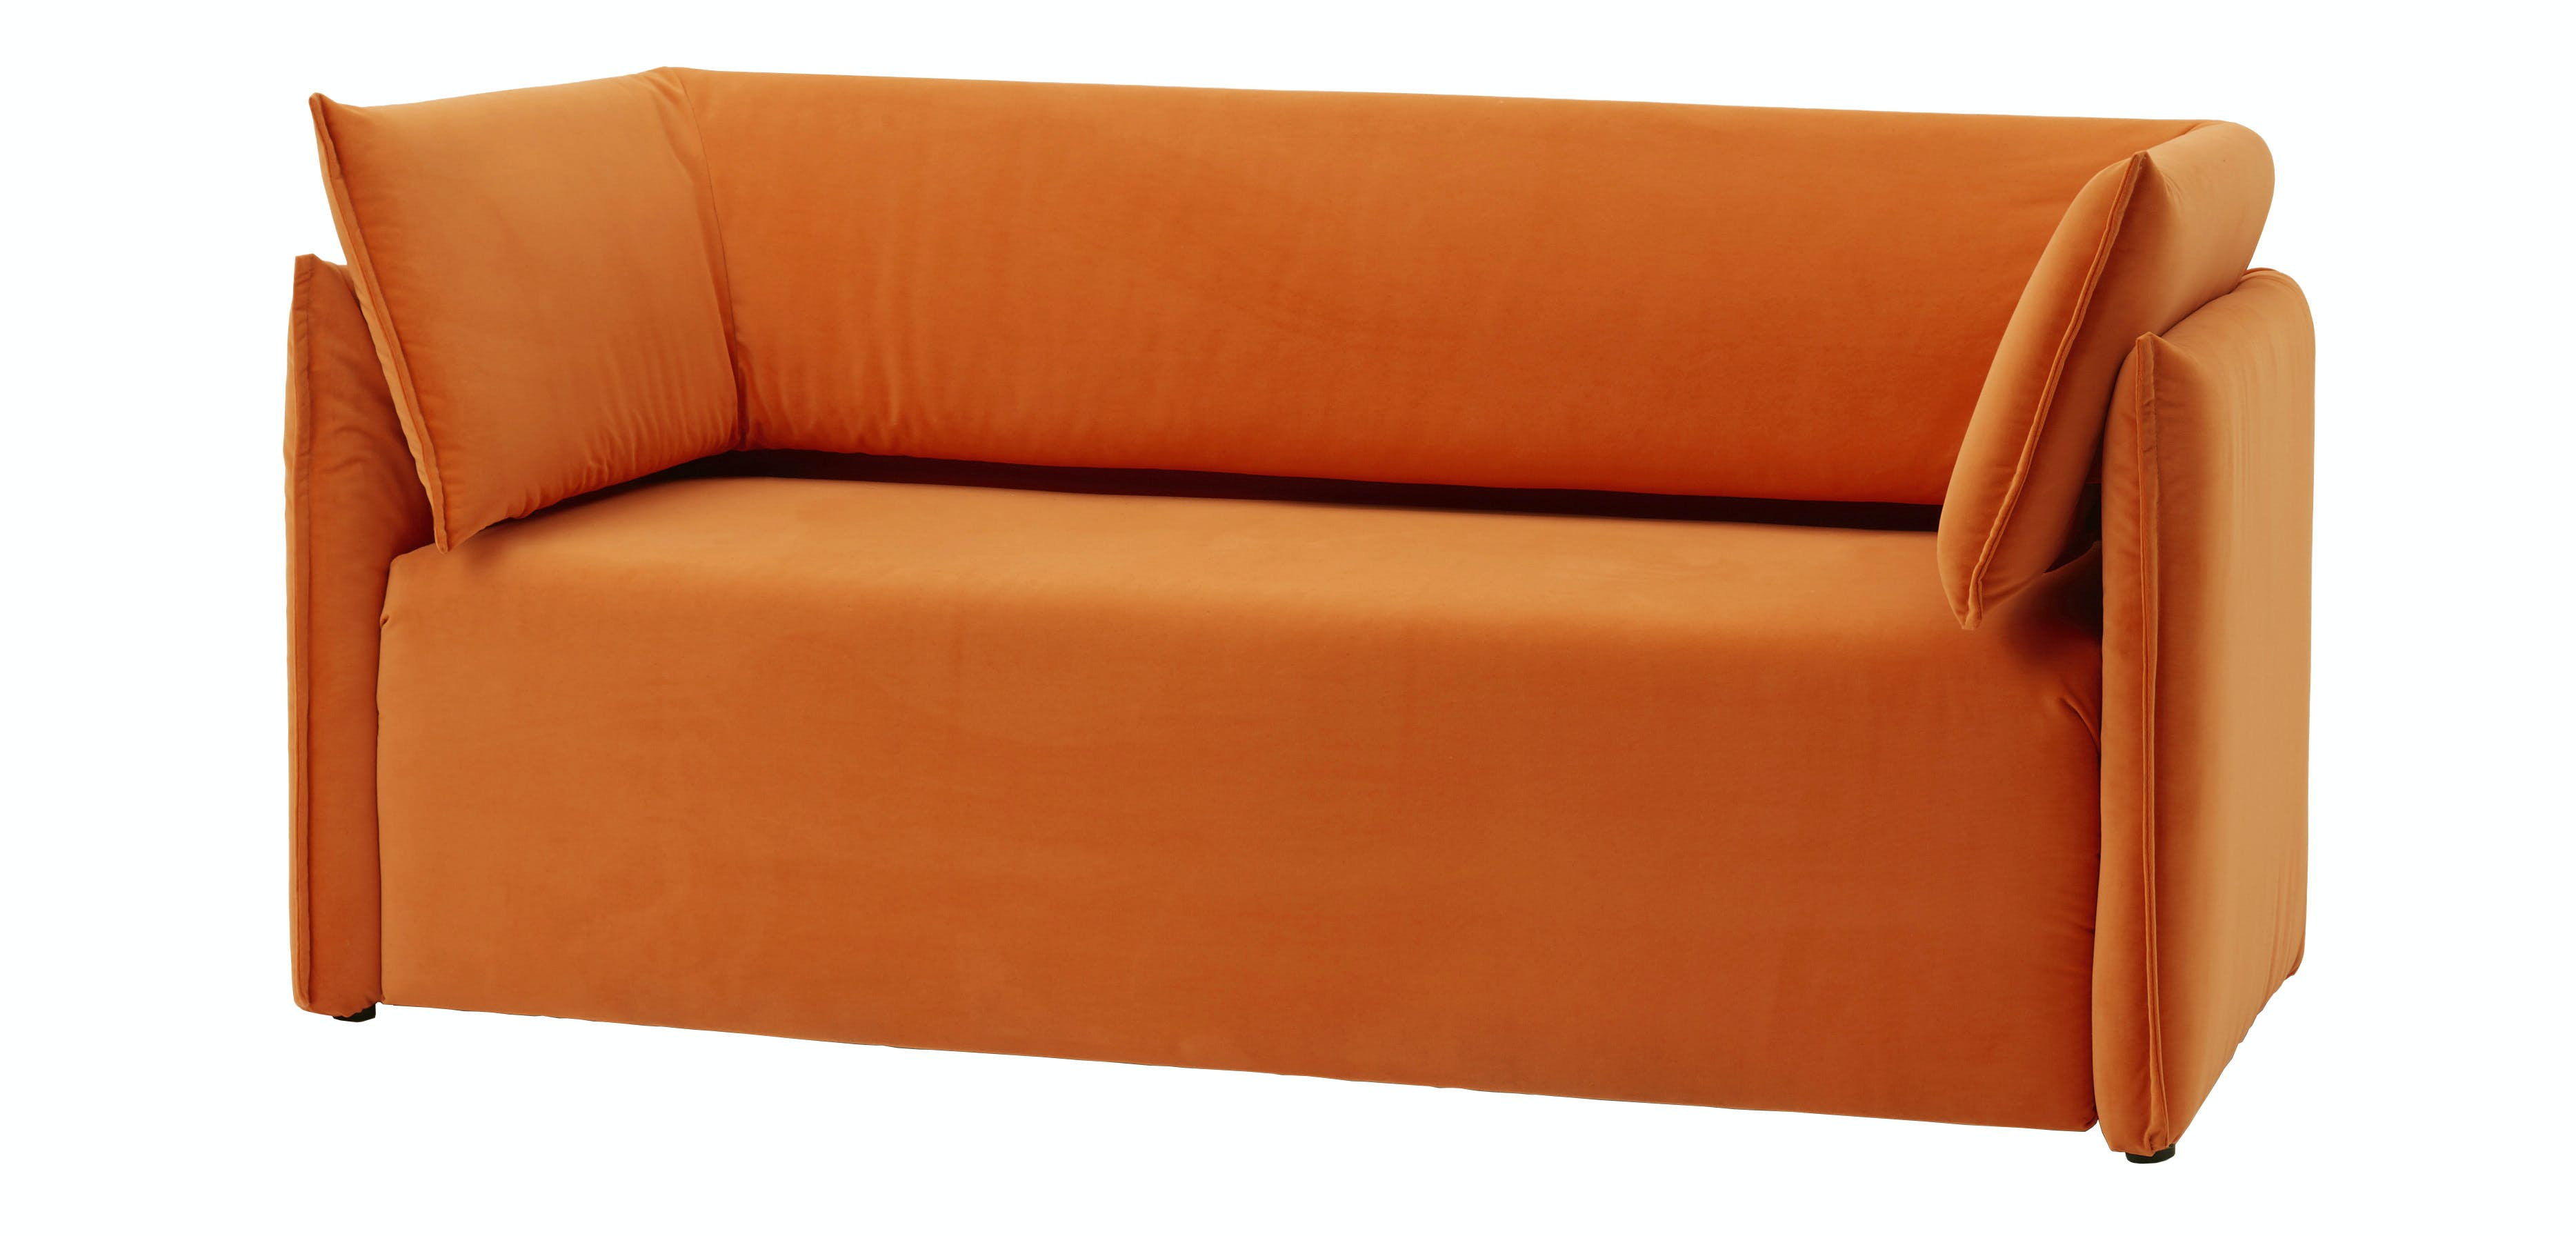 Articles-furniture-orange-boxlike-sofa-haute-living